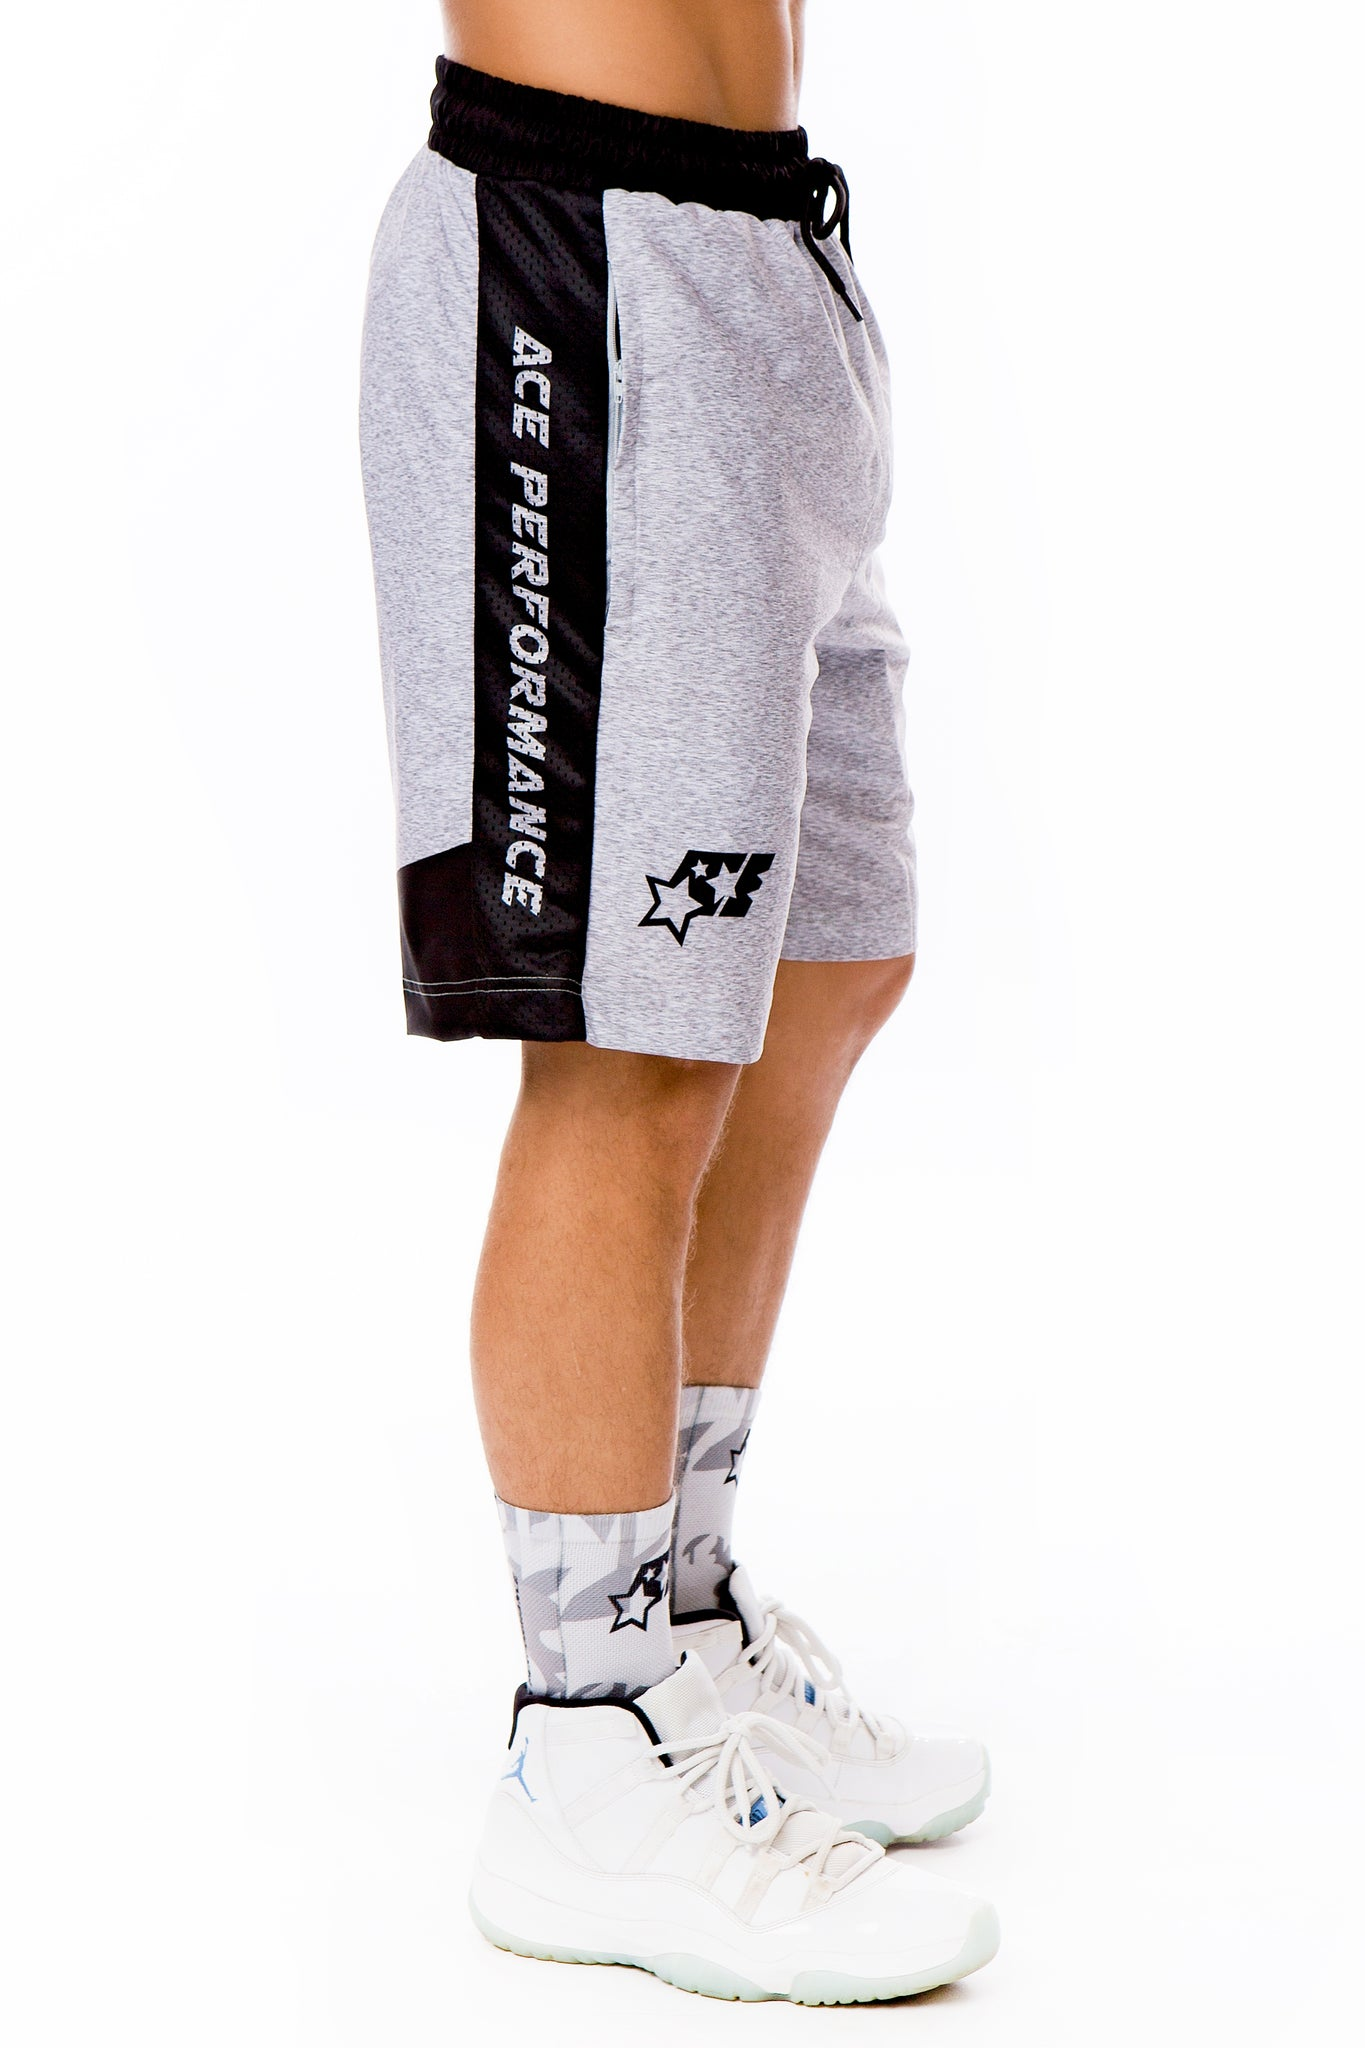 SIDELINE SHORTS - ACE GREY - ACEPERFORMANCE